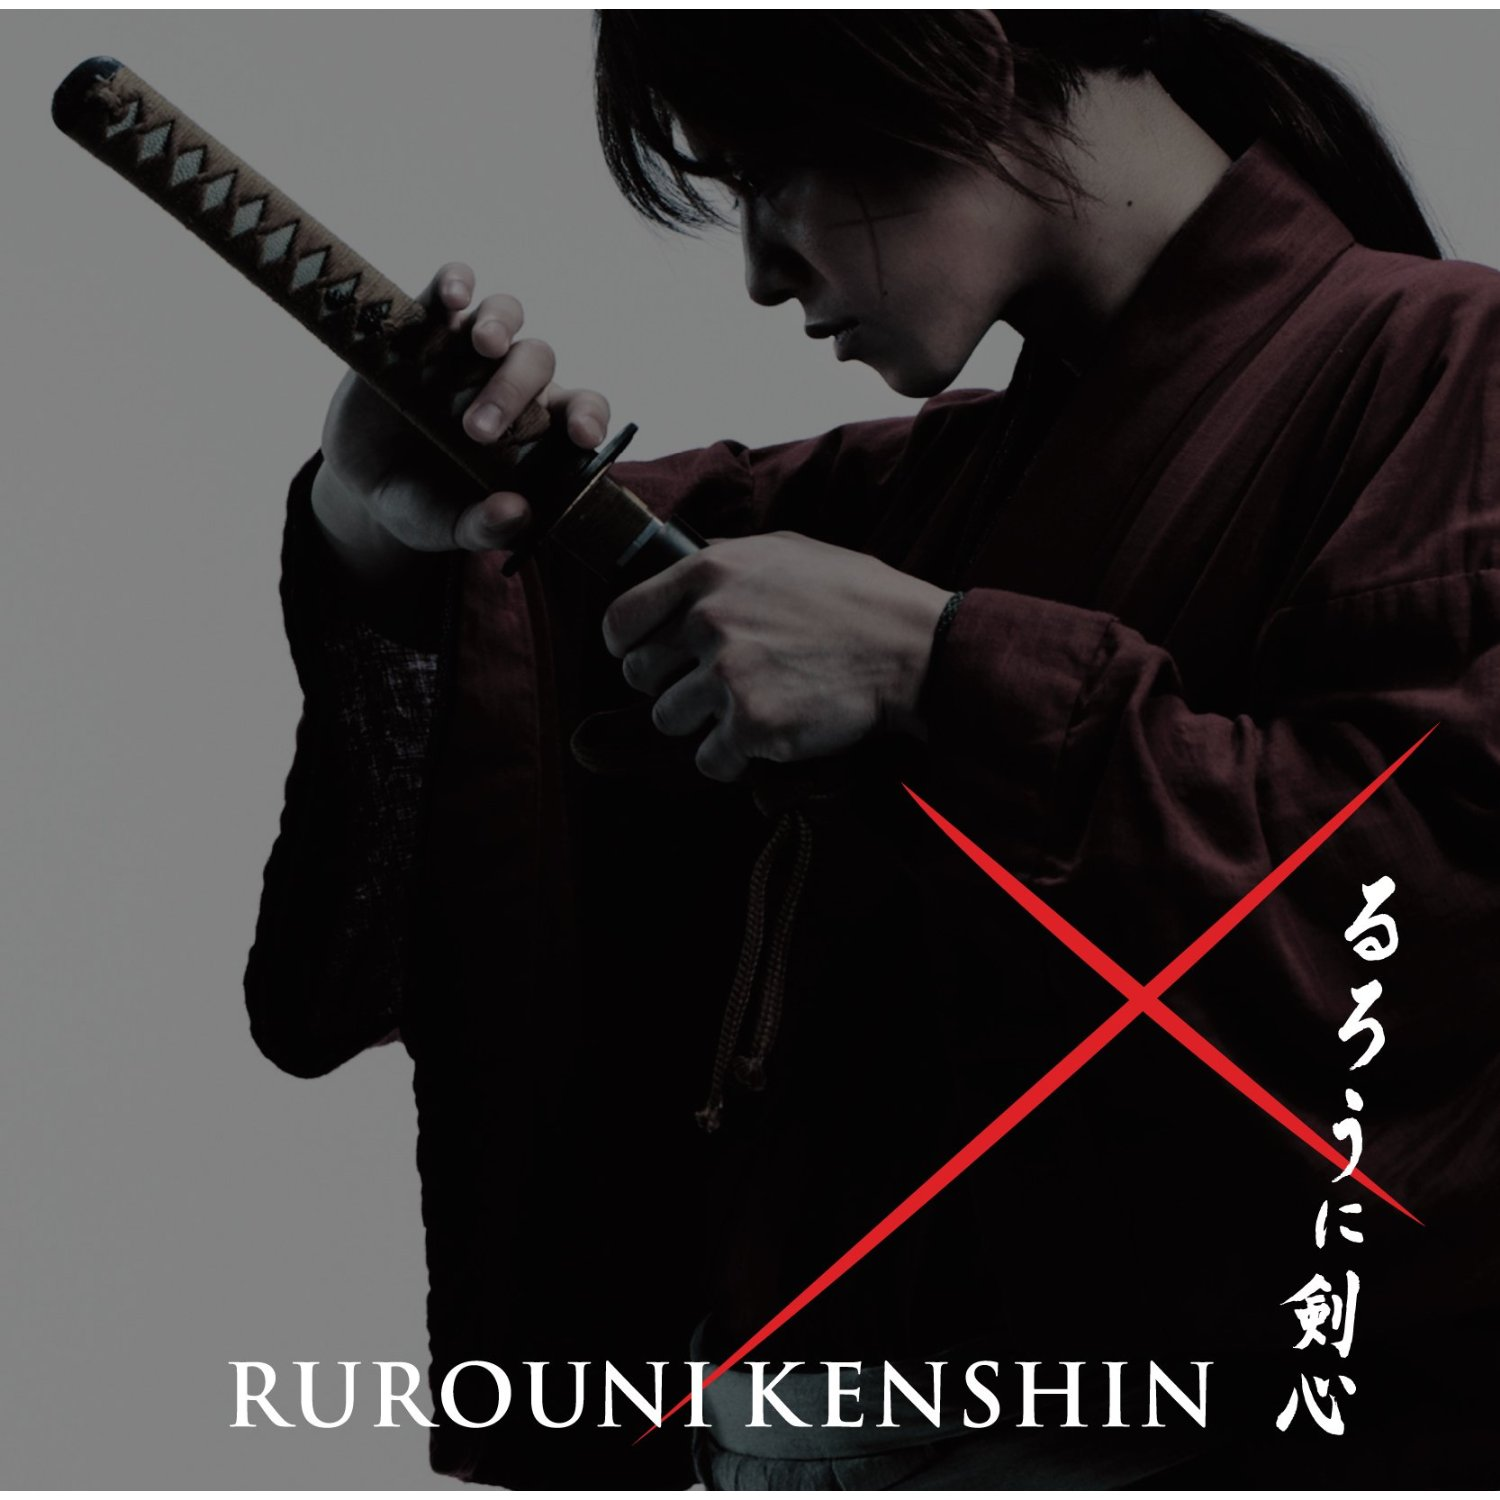 Rurouni Kenshin review by Kaze